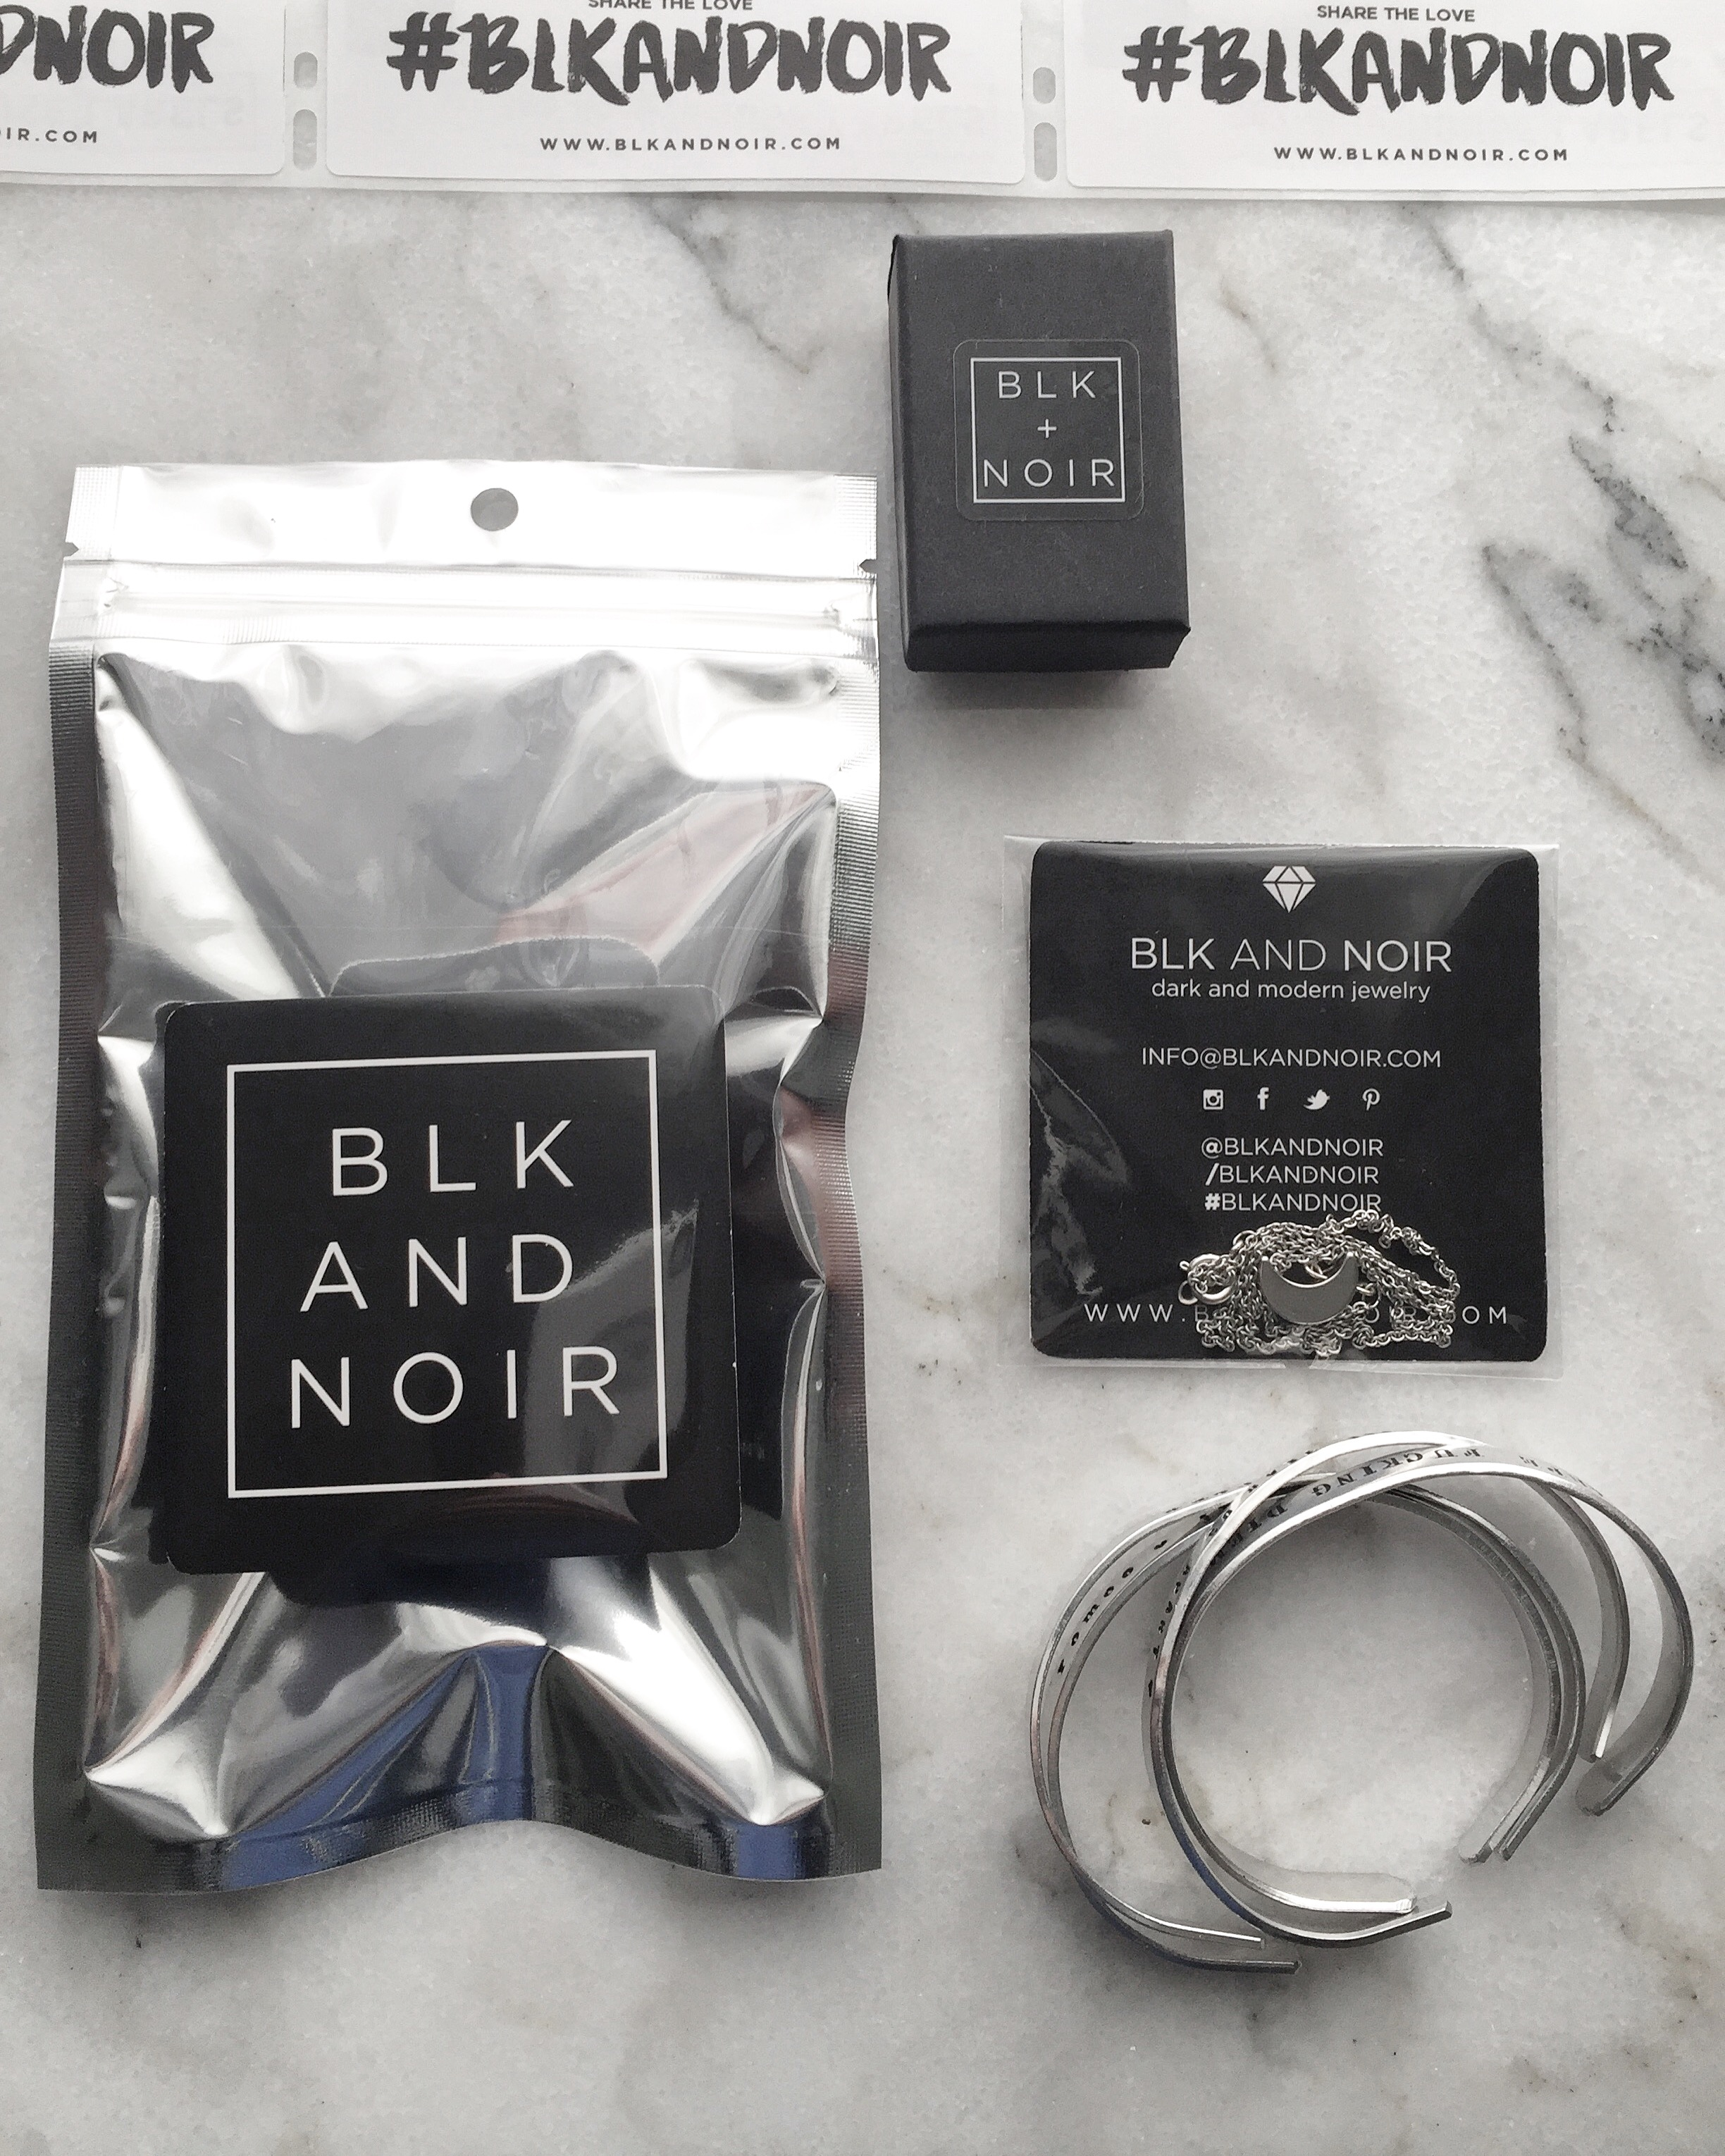 BLKANDNOIR BRANDING AND PACKAGING